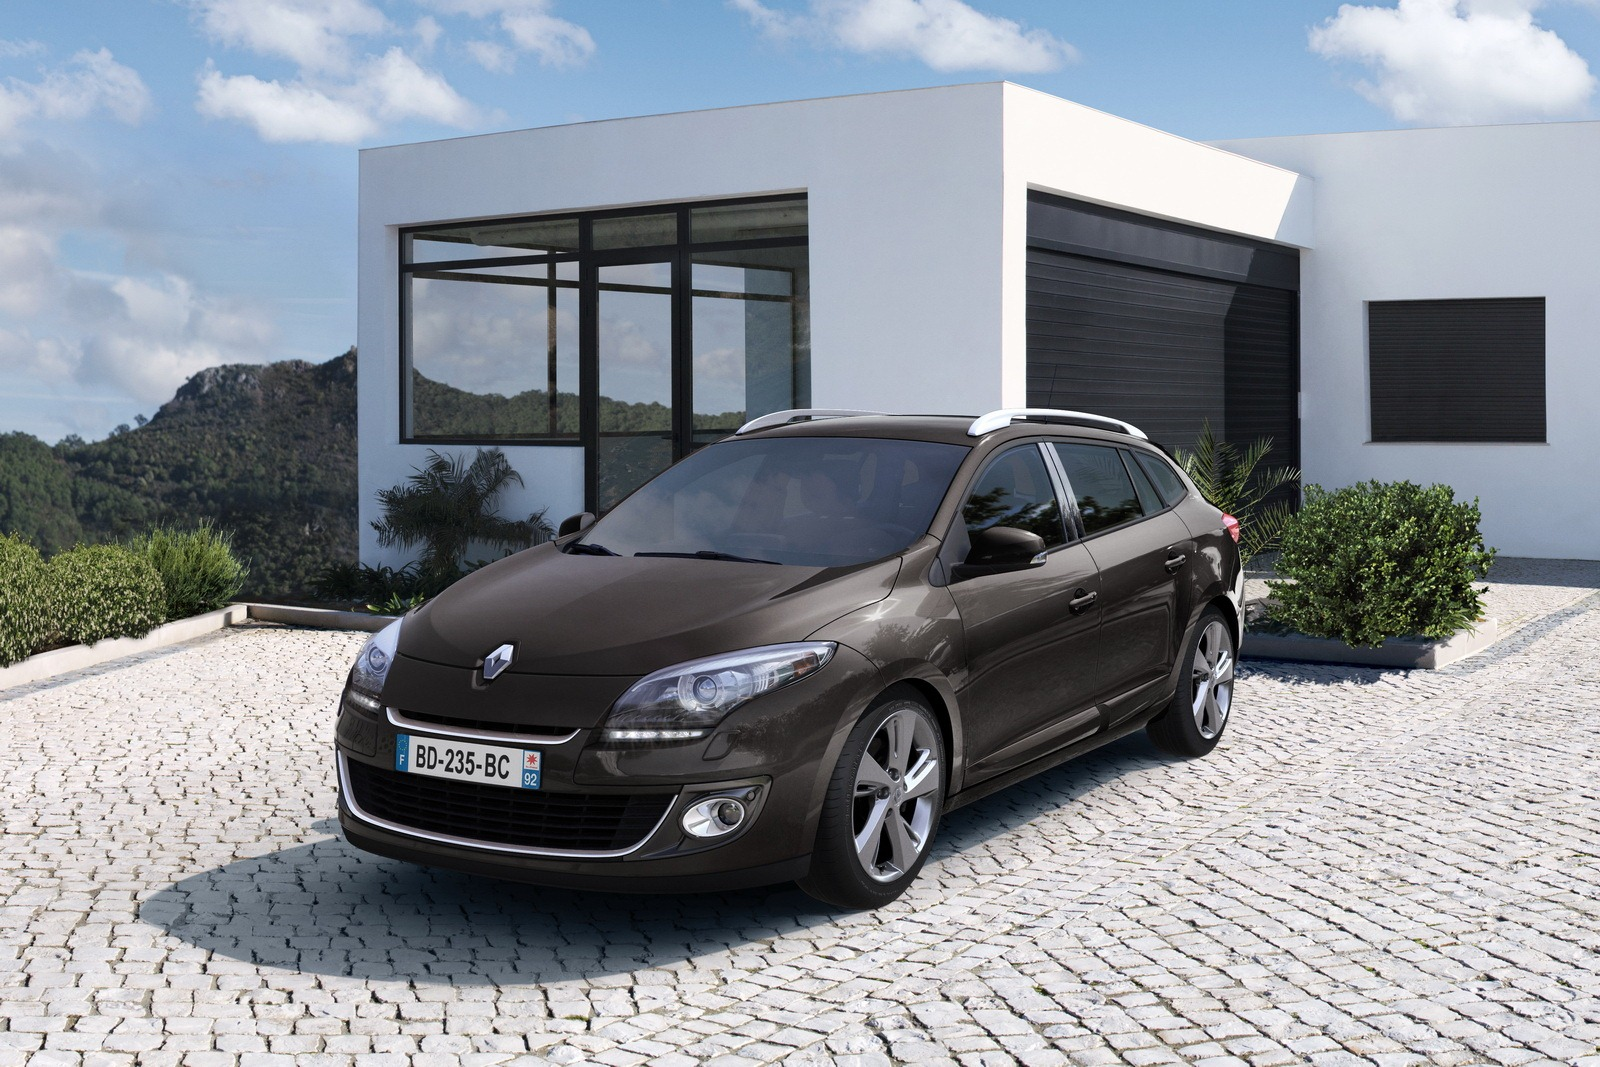 2012 renault megane iii estate pictures information and specs auto. Black Bedroom Furniture Sets. Home Design Ideas